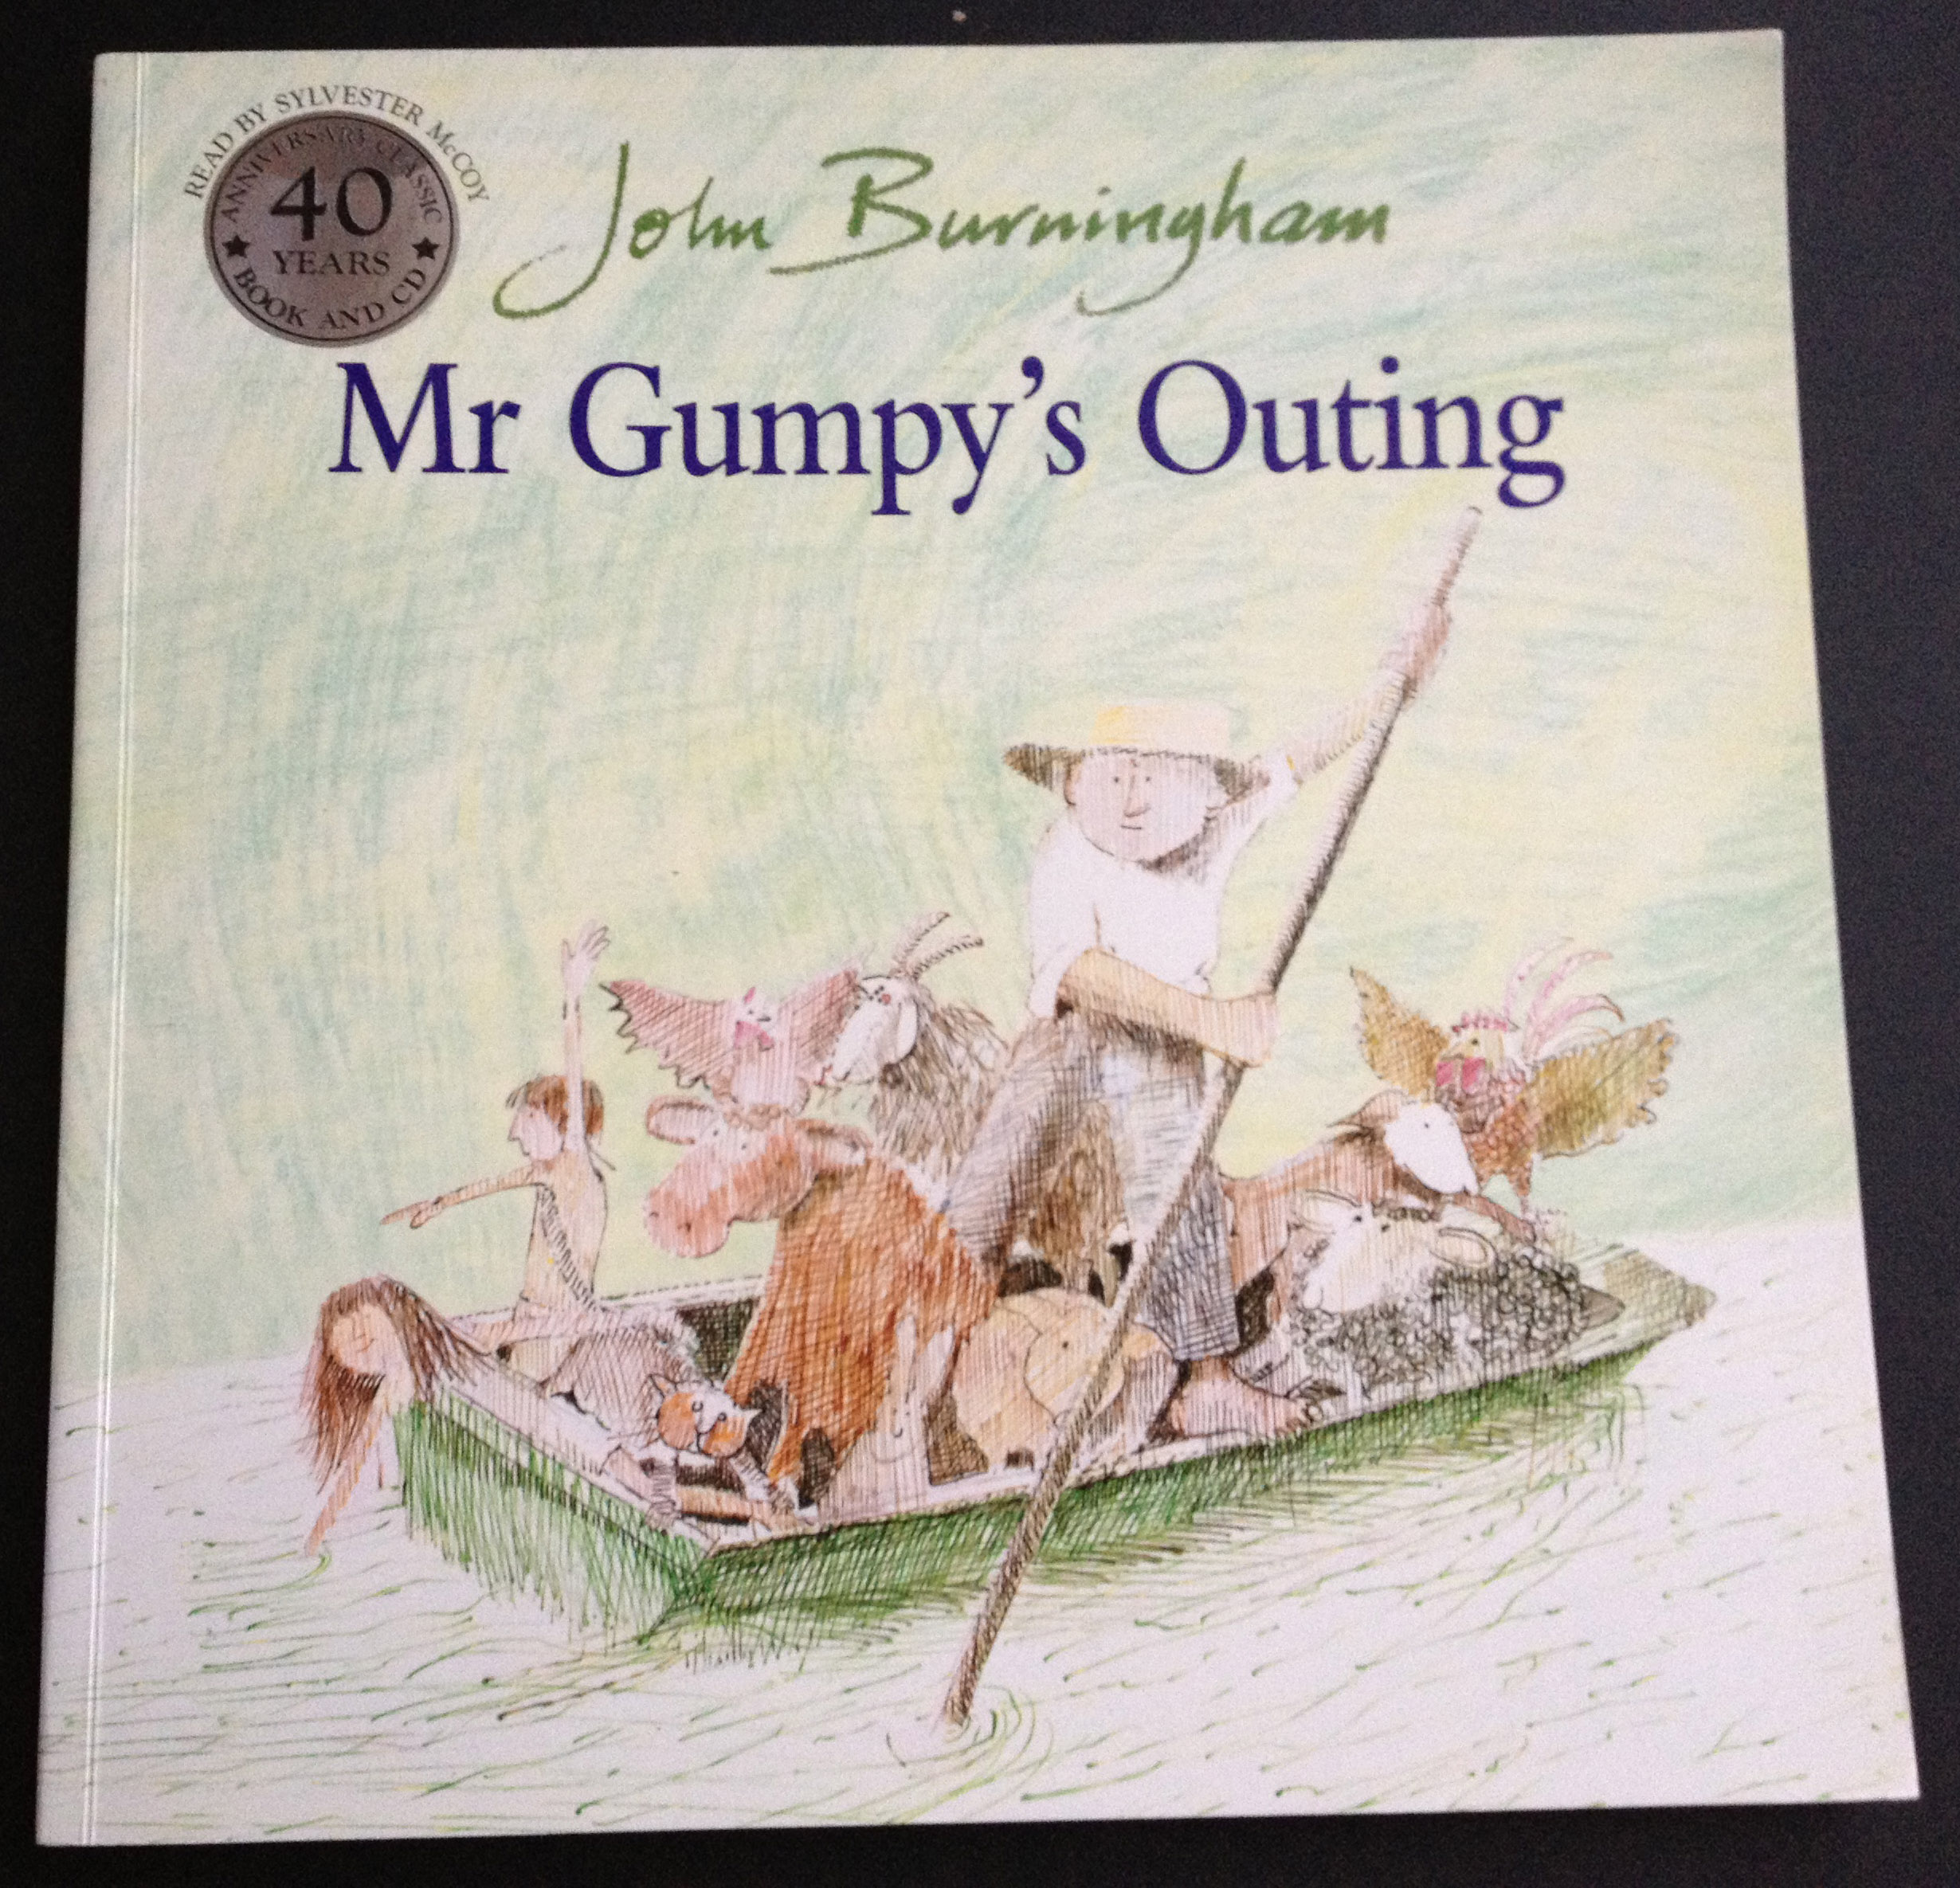 'Mr Gumpy's Outing' by John Burningham